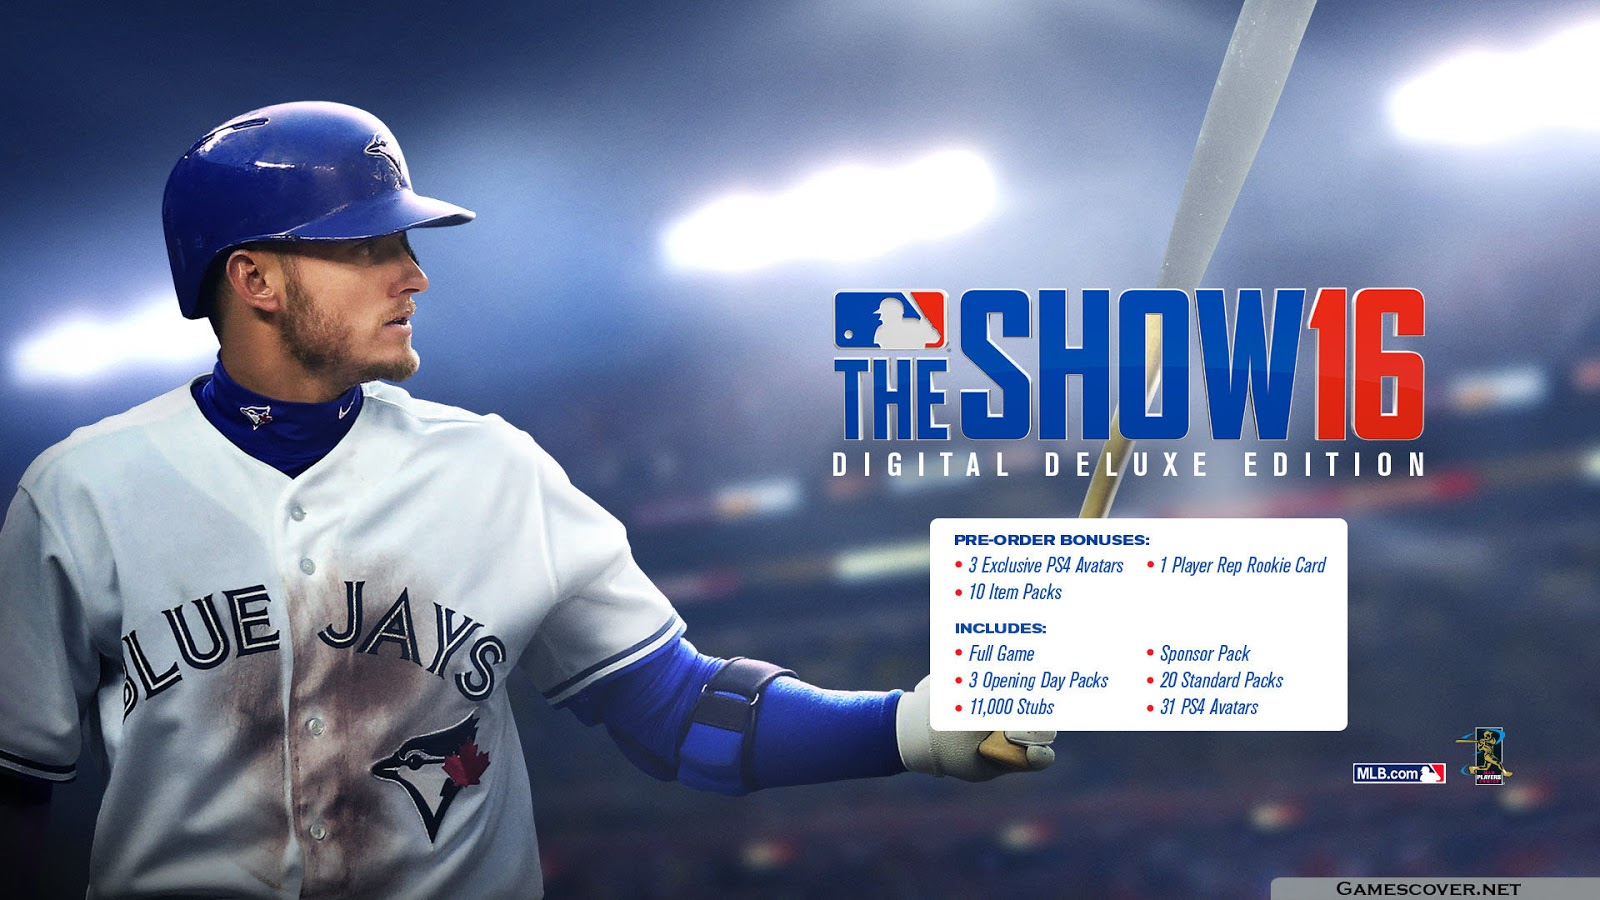 MLB The Show 16 Hot Latest Wallpaper 1920x1080